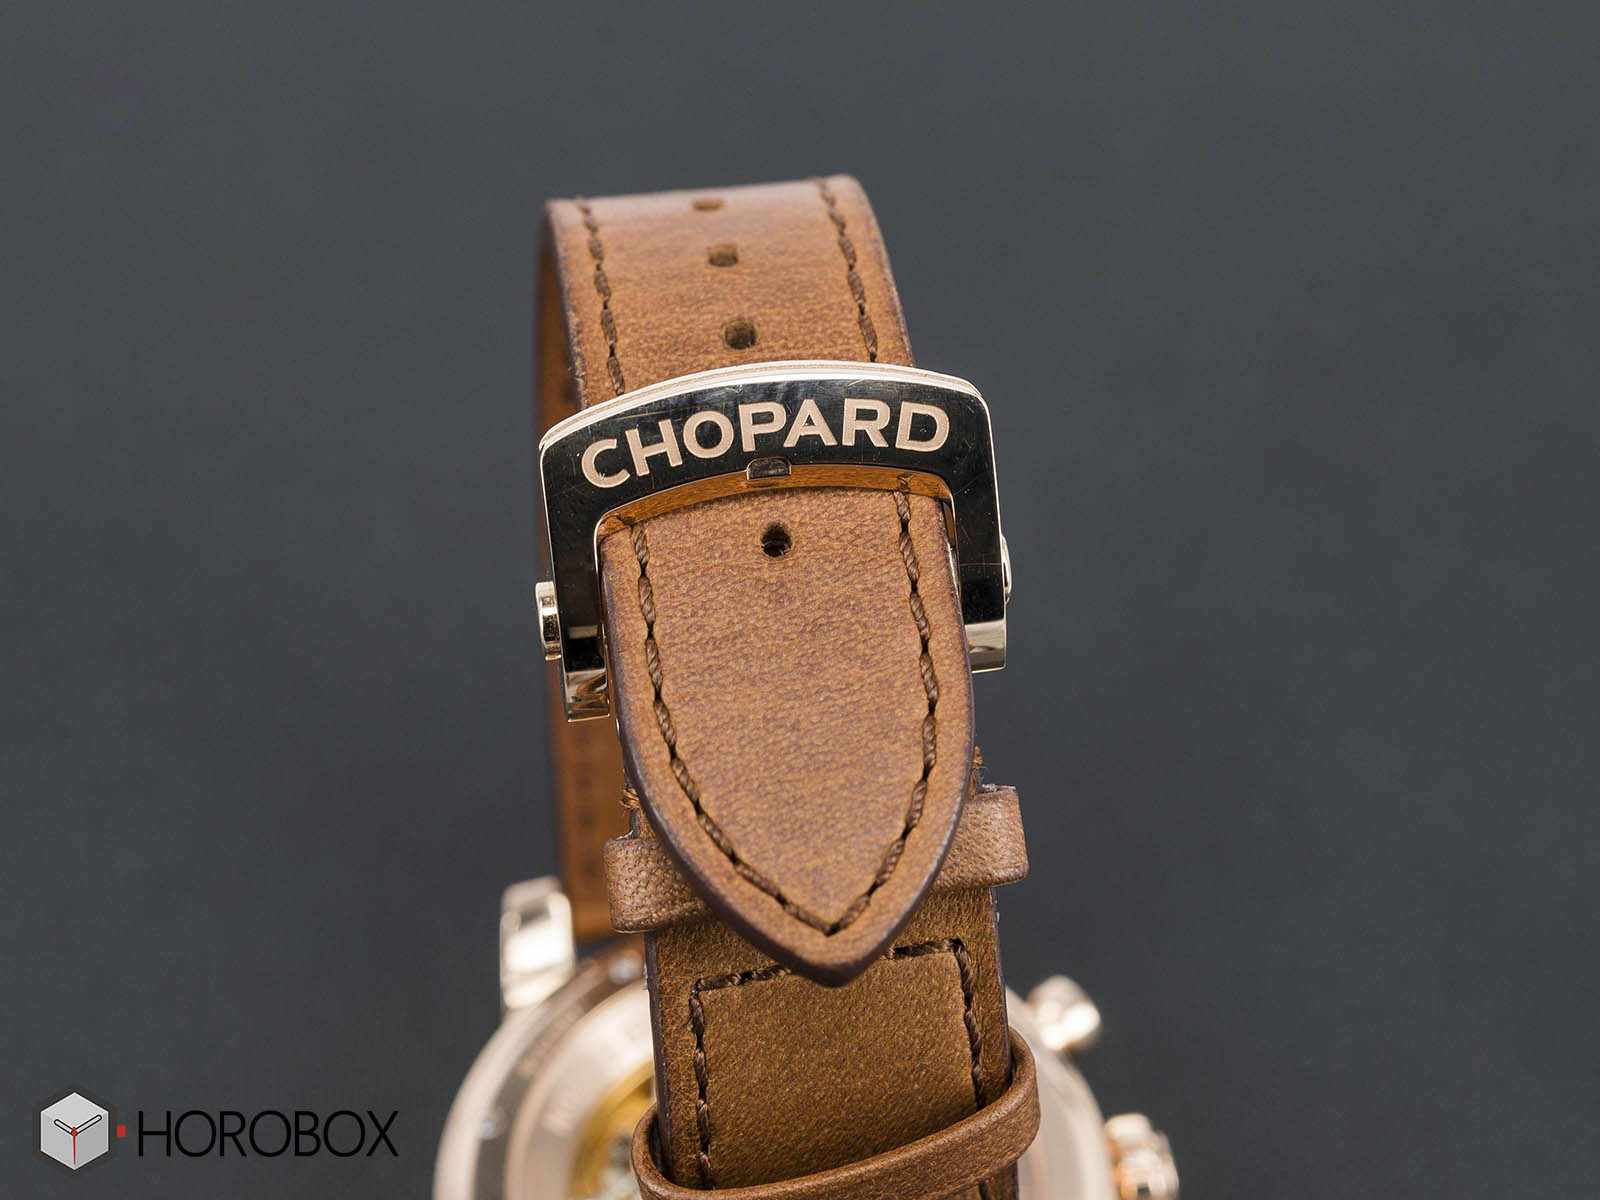 chopard-mille-miglia-classic-xl-90th-anniversary-limited-edition-8.jpg